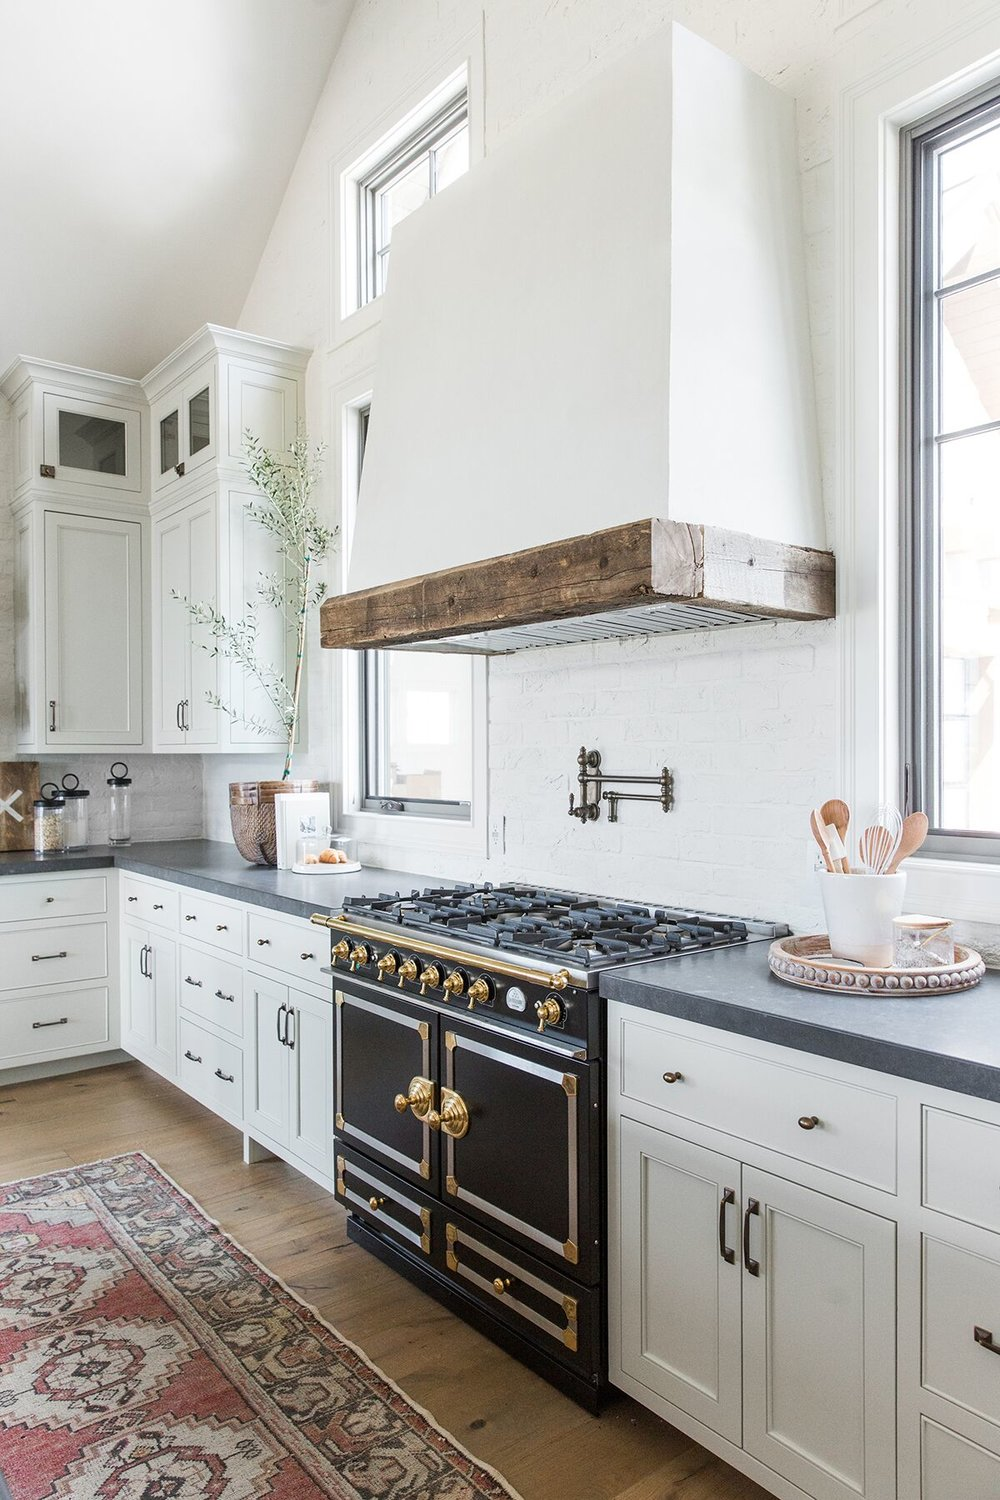 Refined,+rustic+kitchen+with+exposed+wooden+beams,+hanging+lanterns,+painted+white+brick,+oven+range+in+mountain+home+-+Studio+McGee+Design-3.jpeg